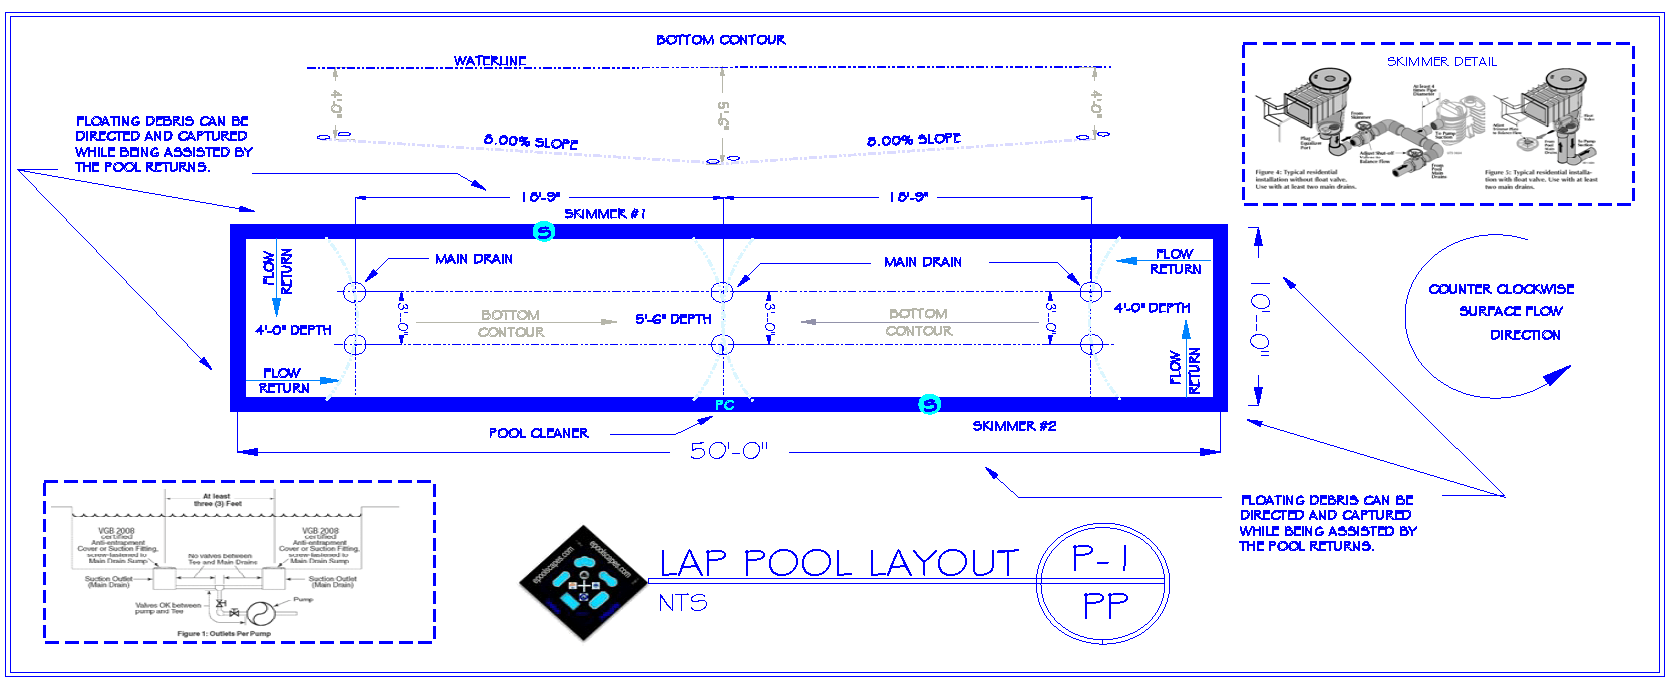 Lap Pool Photos, Images & Concepts (800) 766